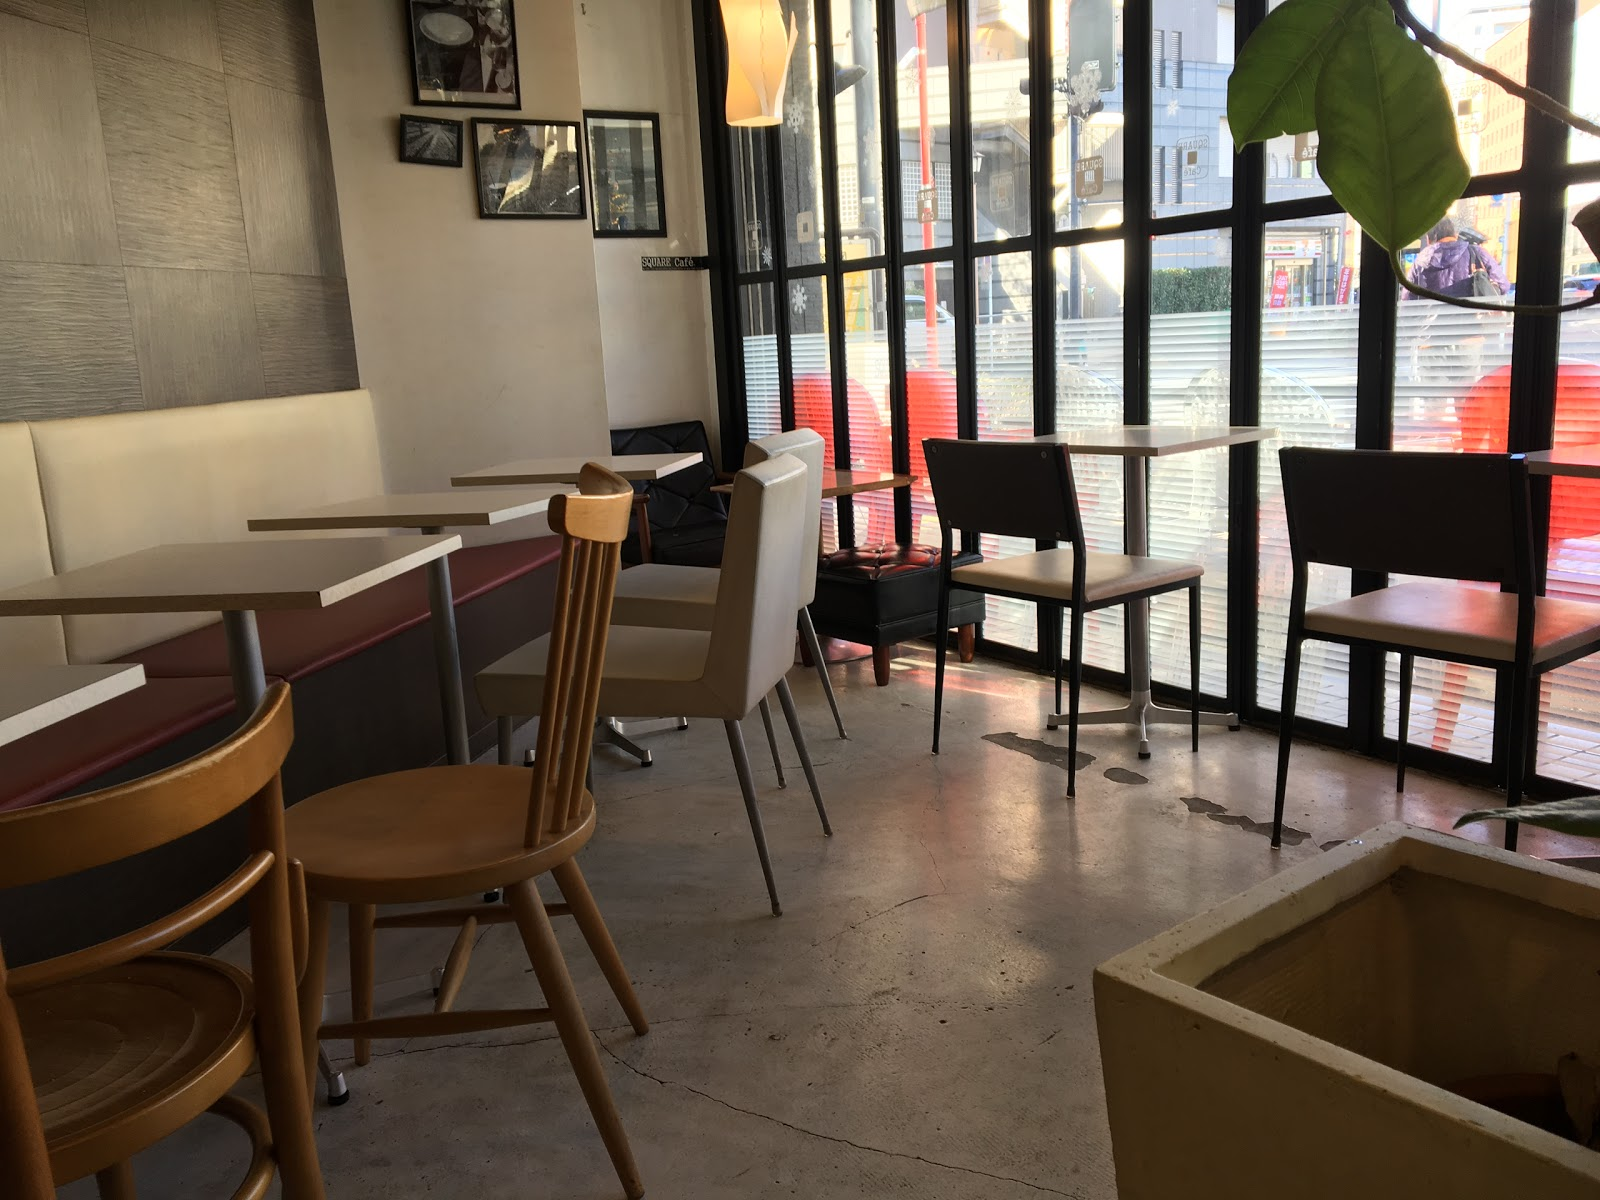 SQUARE Cafe 東日本橋 本店のイメージ